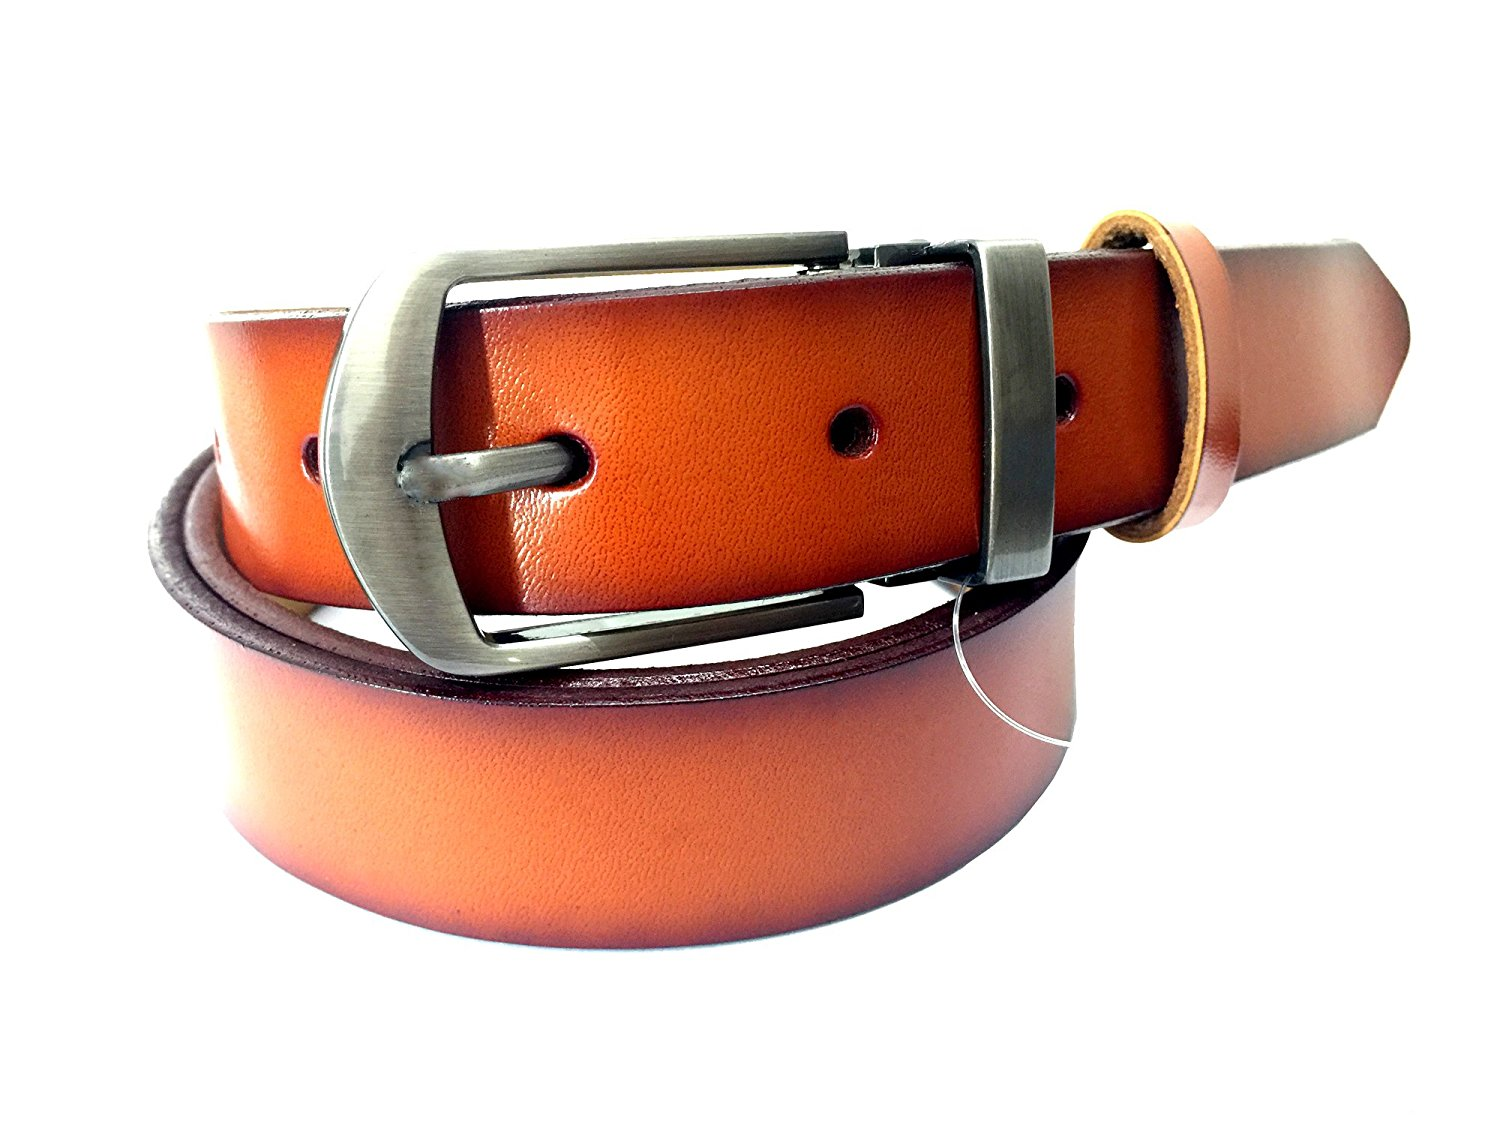 ... Leather Belt For womens In Split Leather 2.8CM Plain Belt With Black  Edge Camel Color